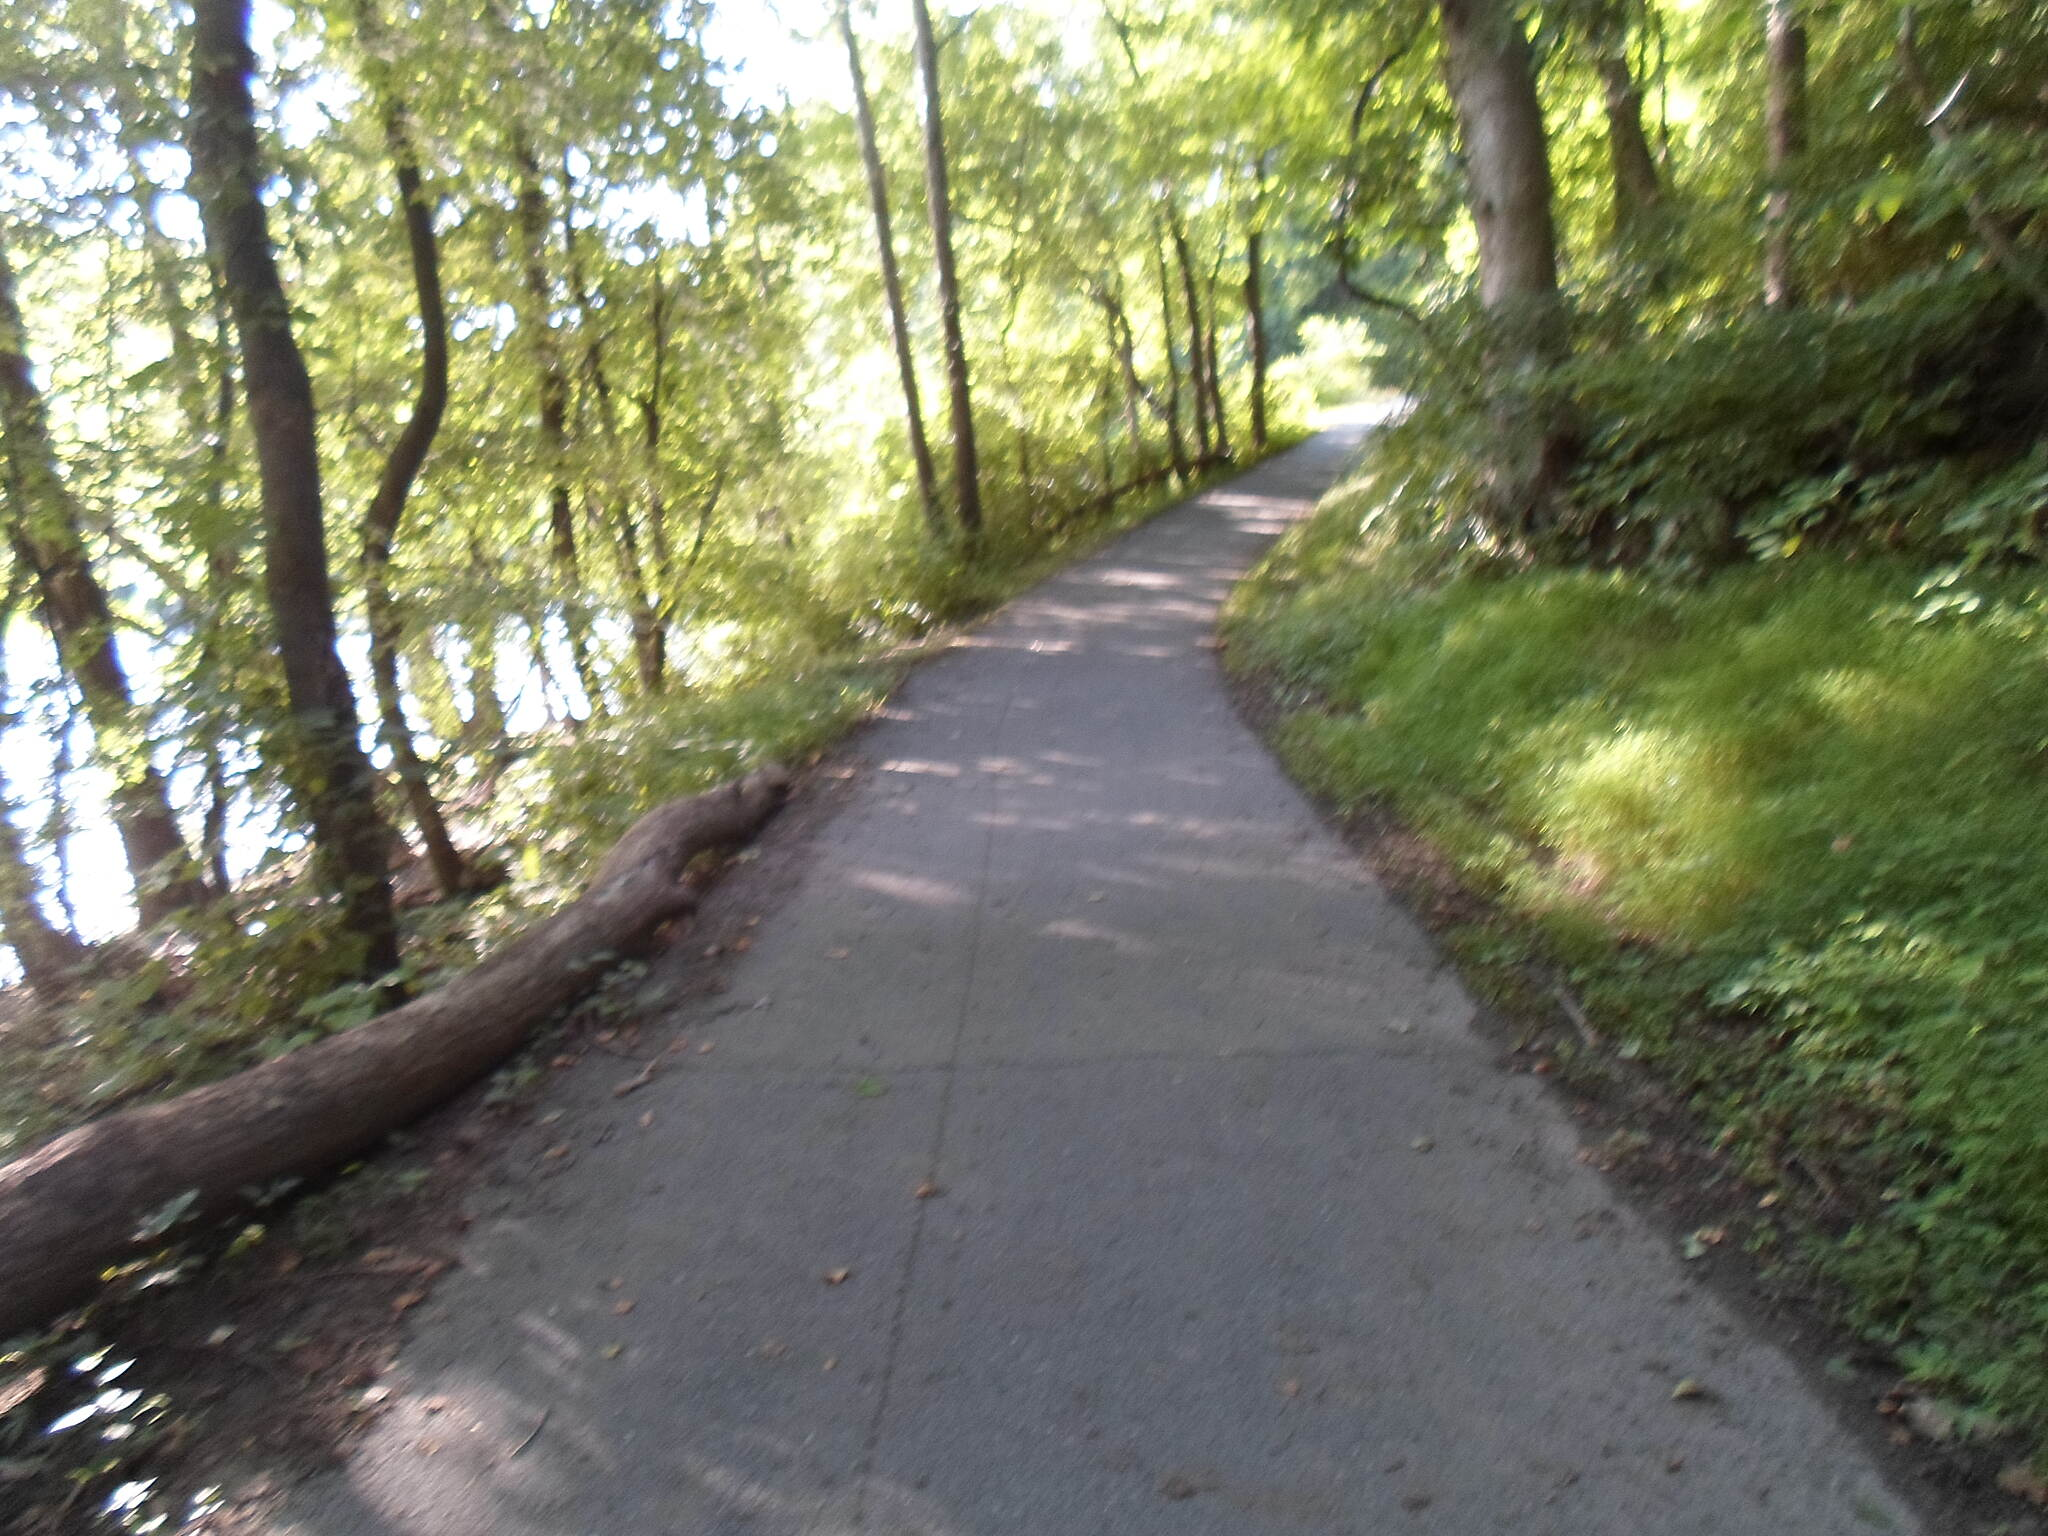 Exeter Scenic River Trail Exeter Scenic River Trail Although most of the trail has a crushed stone surface, the westernmost sections are paved with asphalt and concrete. Taken July 2014.